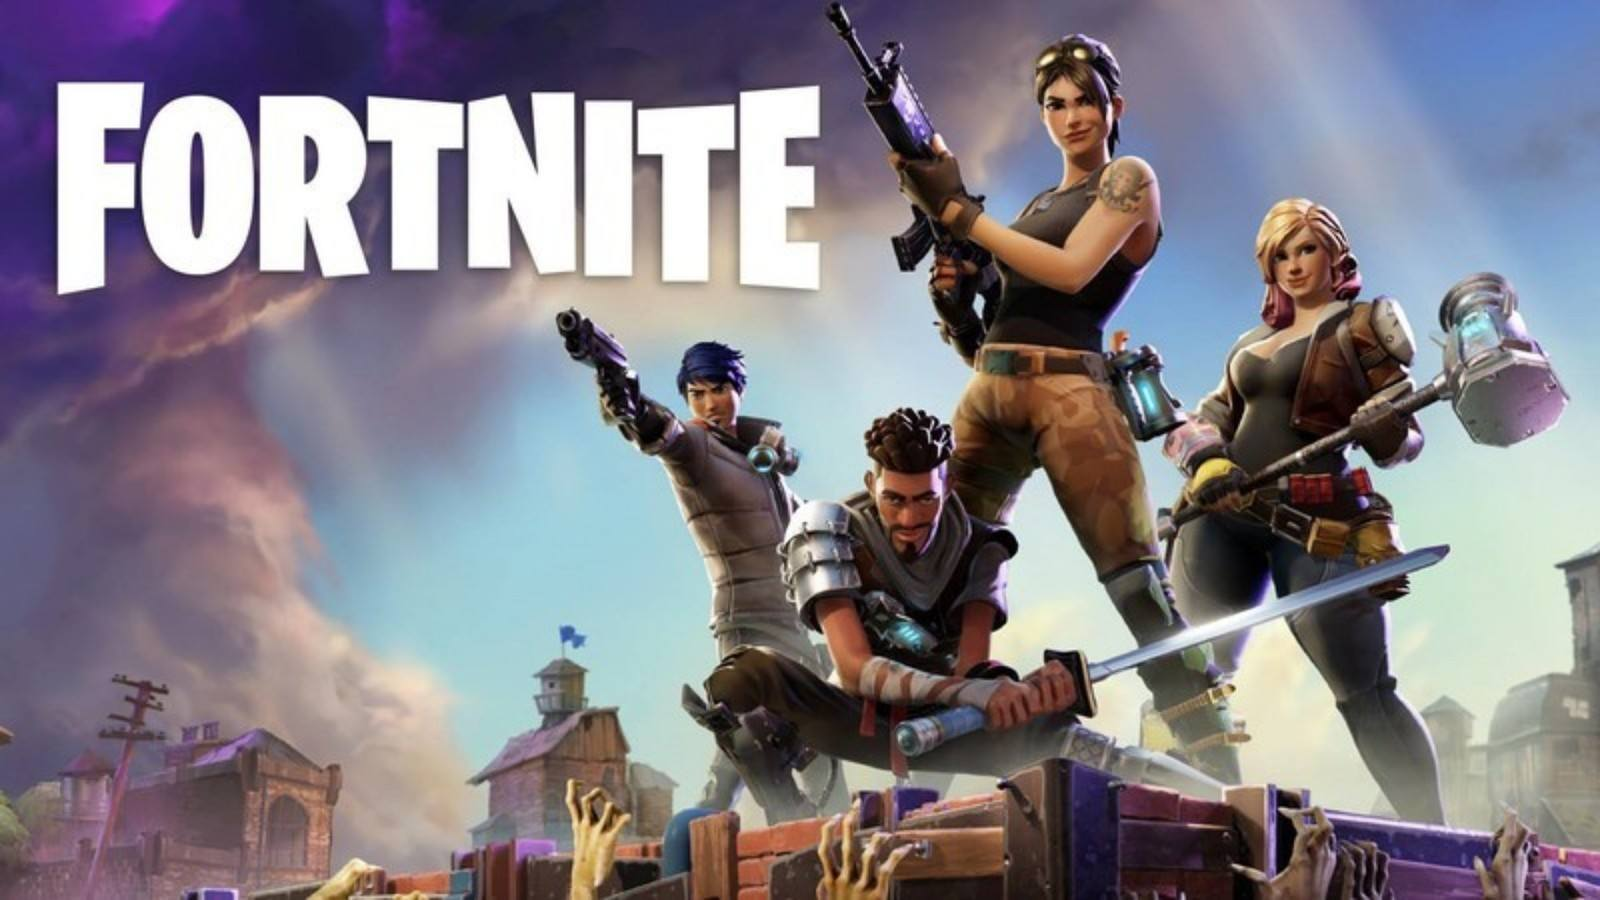 A Comparison Of Mobile Battle Royale Games: Will Fortnite Be The New King?